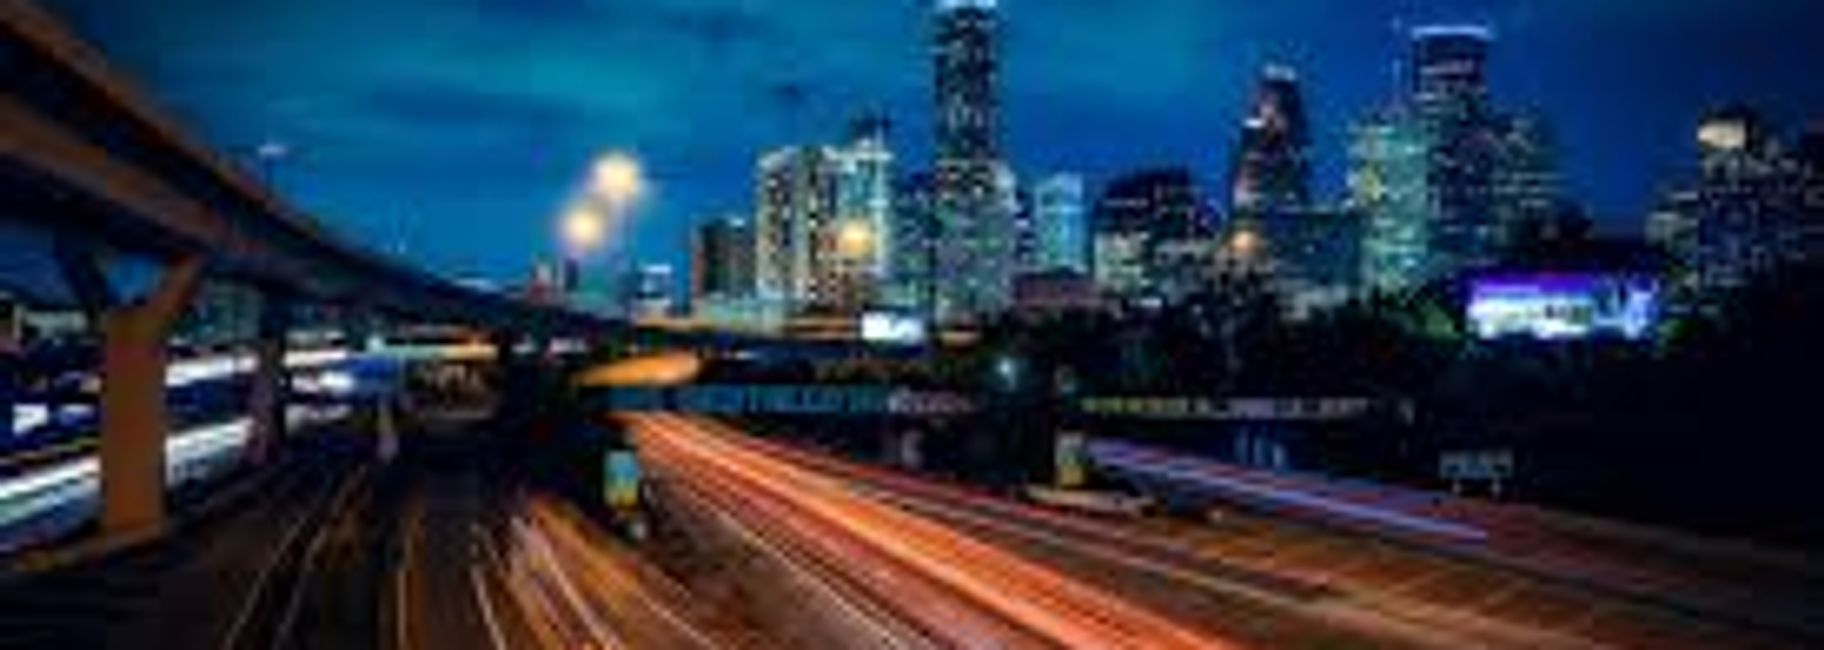 City of Houston highway after dark